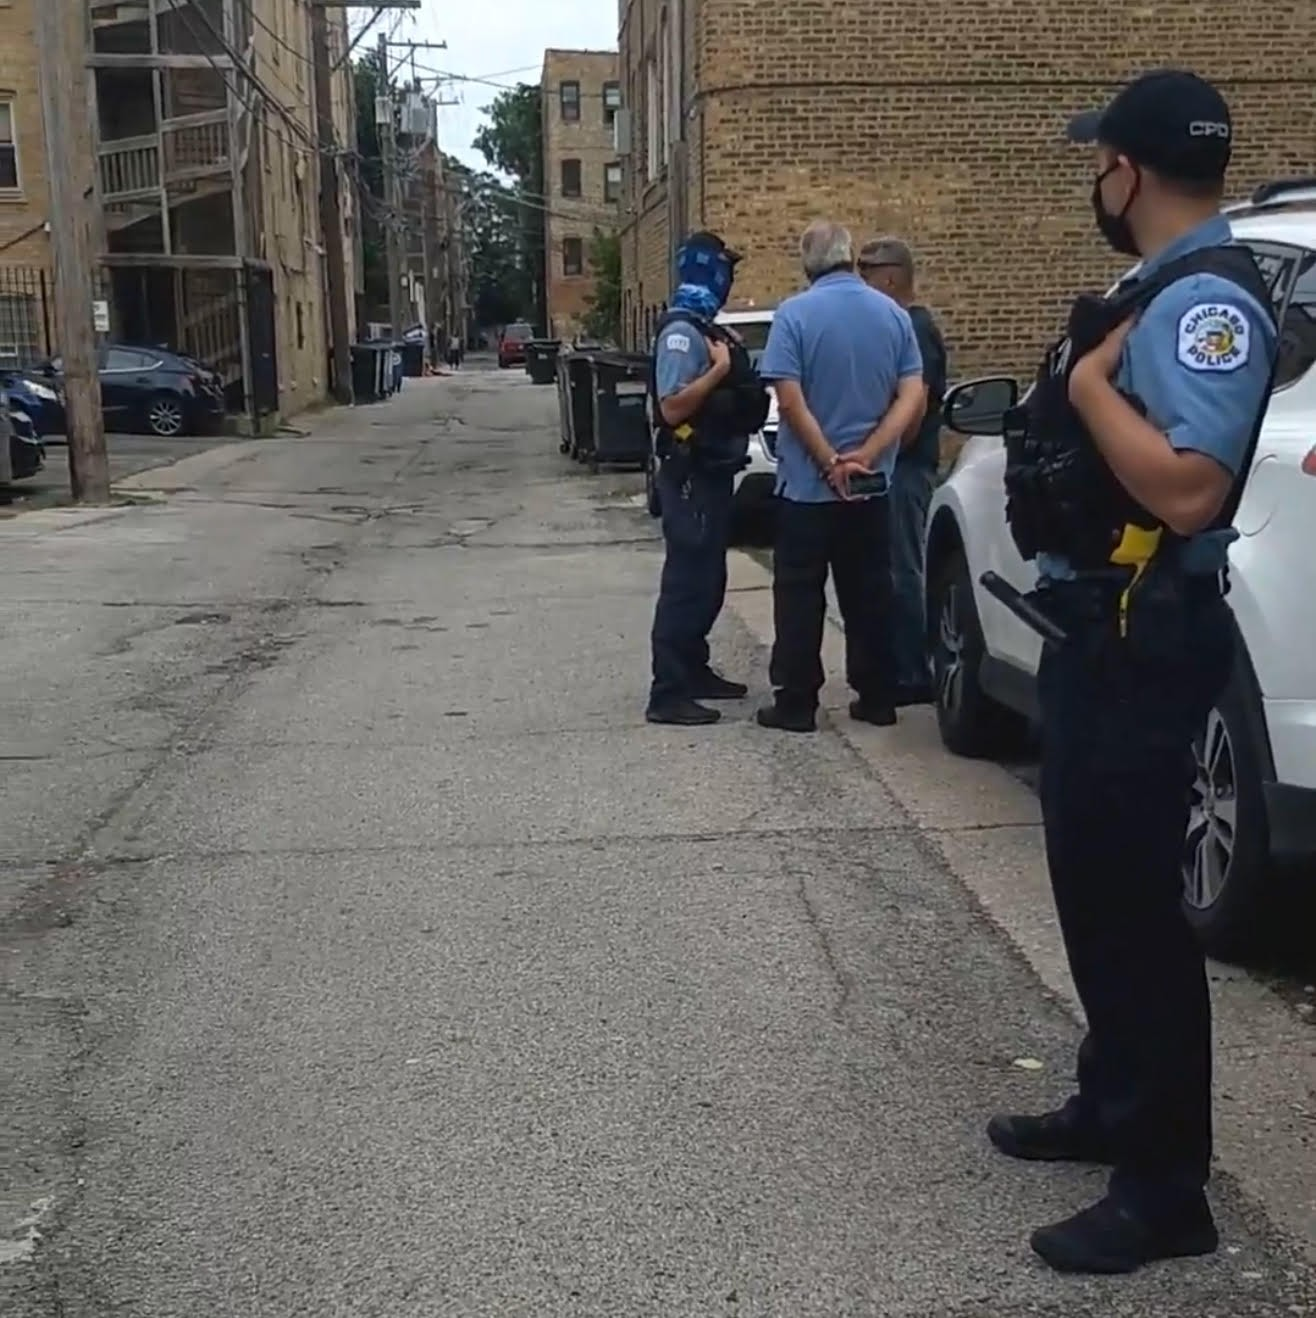 CPD officer Joshua Surgal (with the blue neckwarmer on his face) spoke with the men who extracted a tenant at gunpoint out of earshot of bystanders.